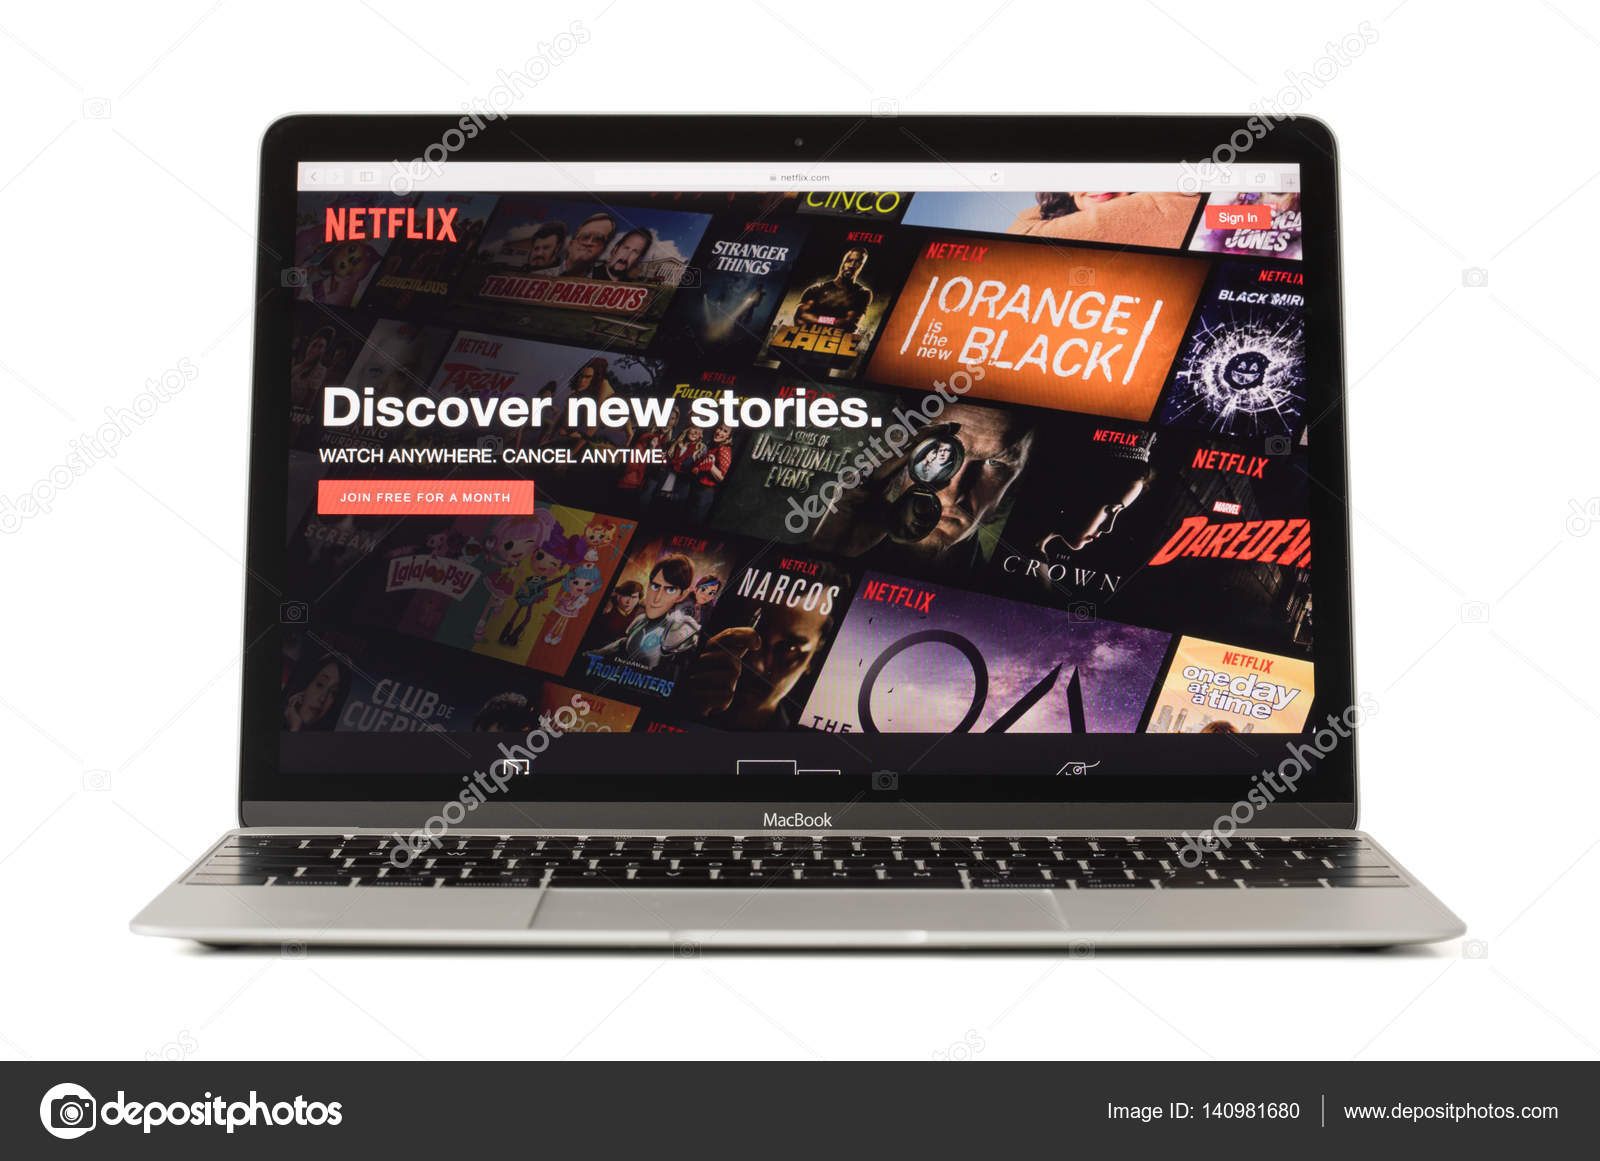 RIGA, LATVIA - February 06, 2017: Netflix,the worlds leading